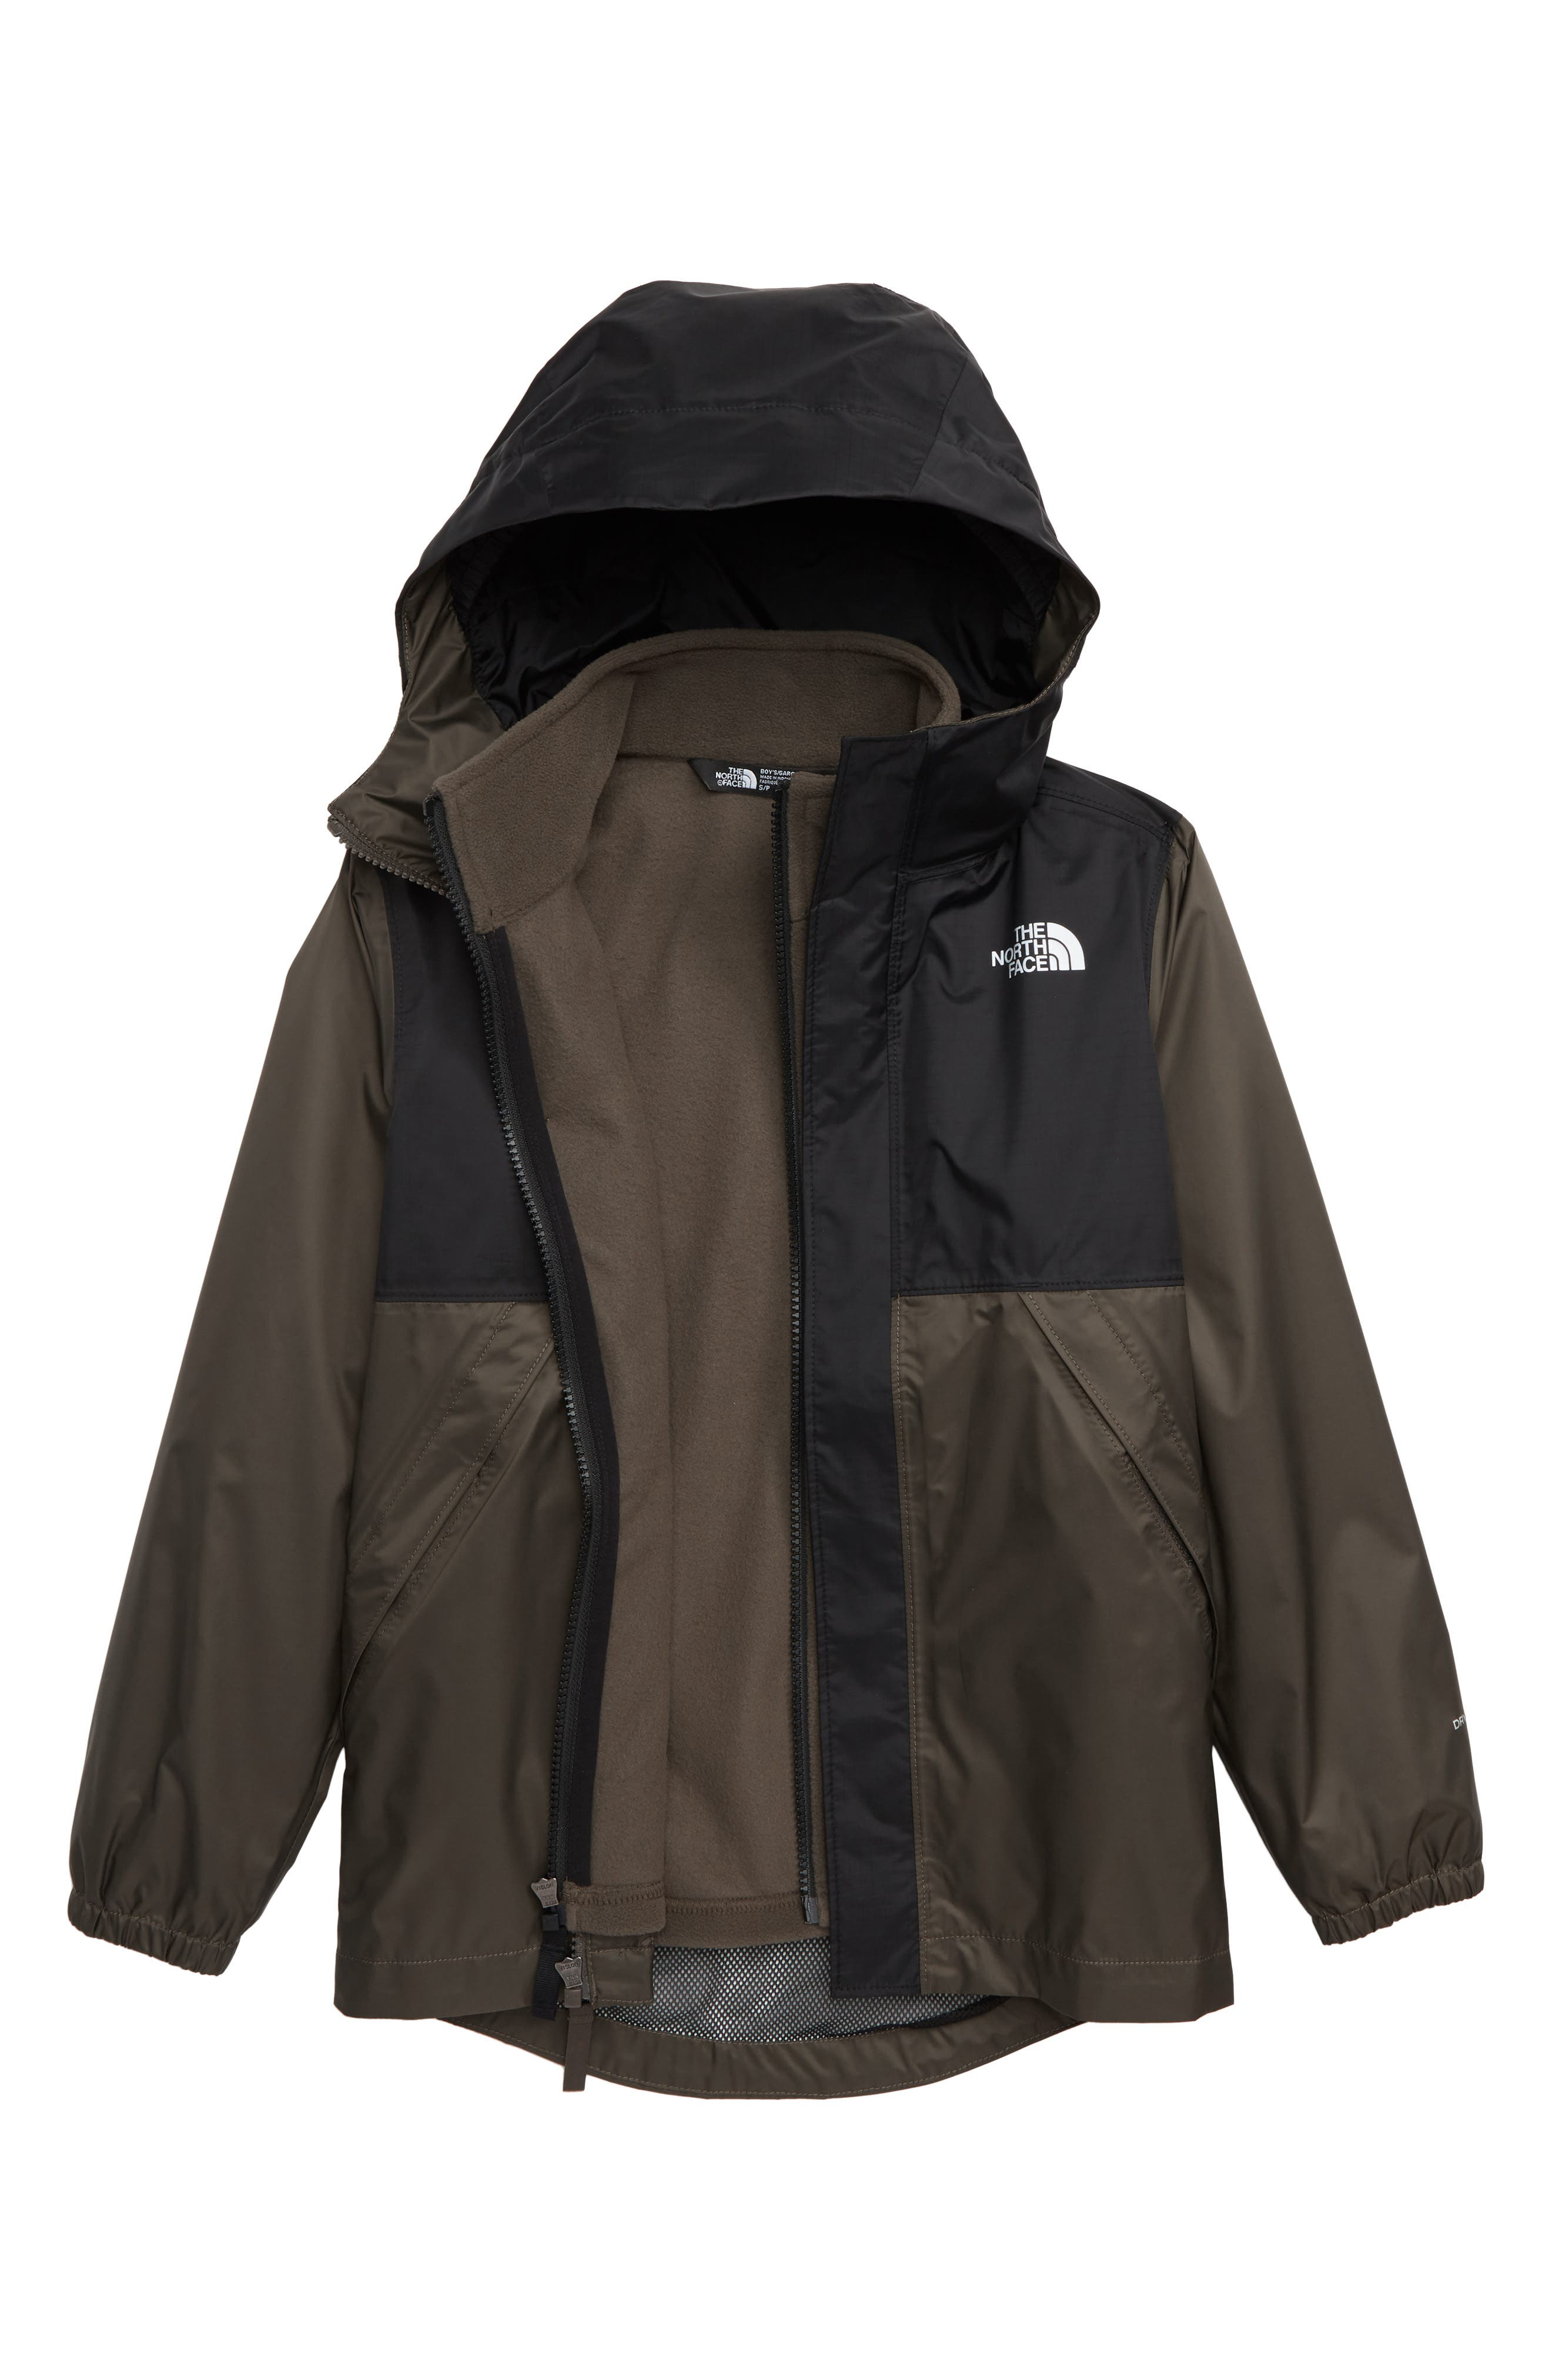 THE NORTH FACE Stormy Rain Triclimate<sup>®</sup> Waterproof 3-in-1 Jacket, Main, color, TAUPE GREEN